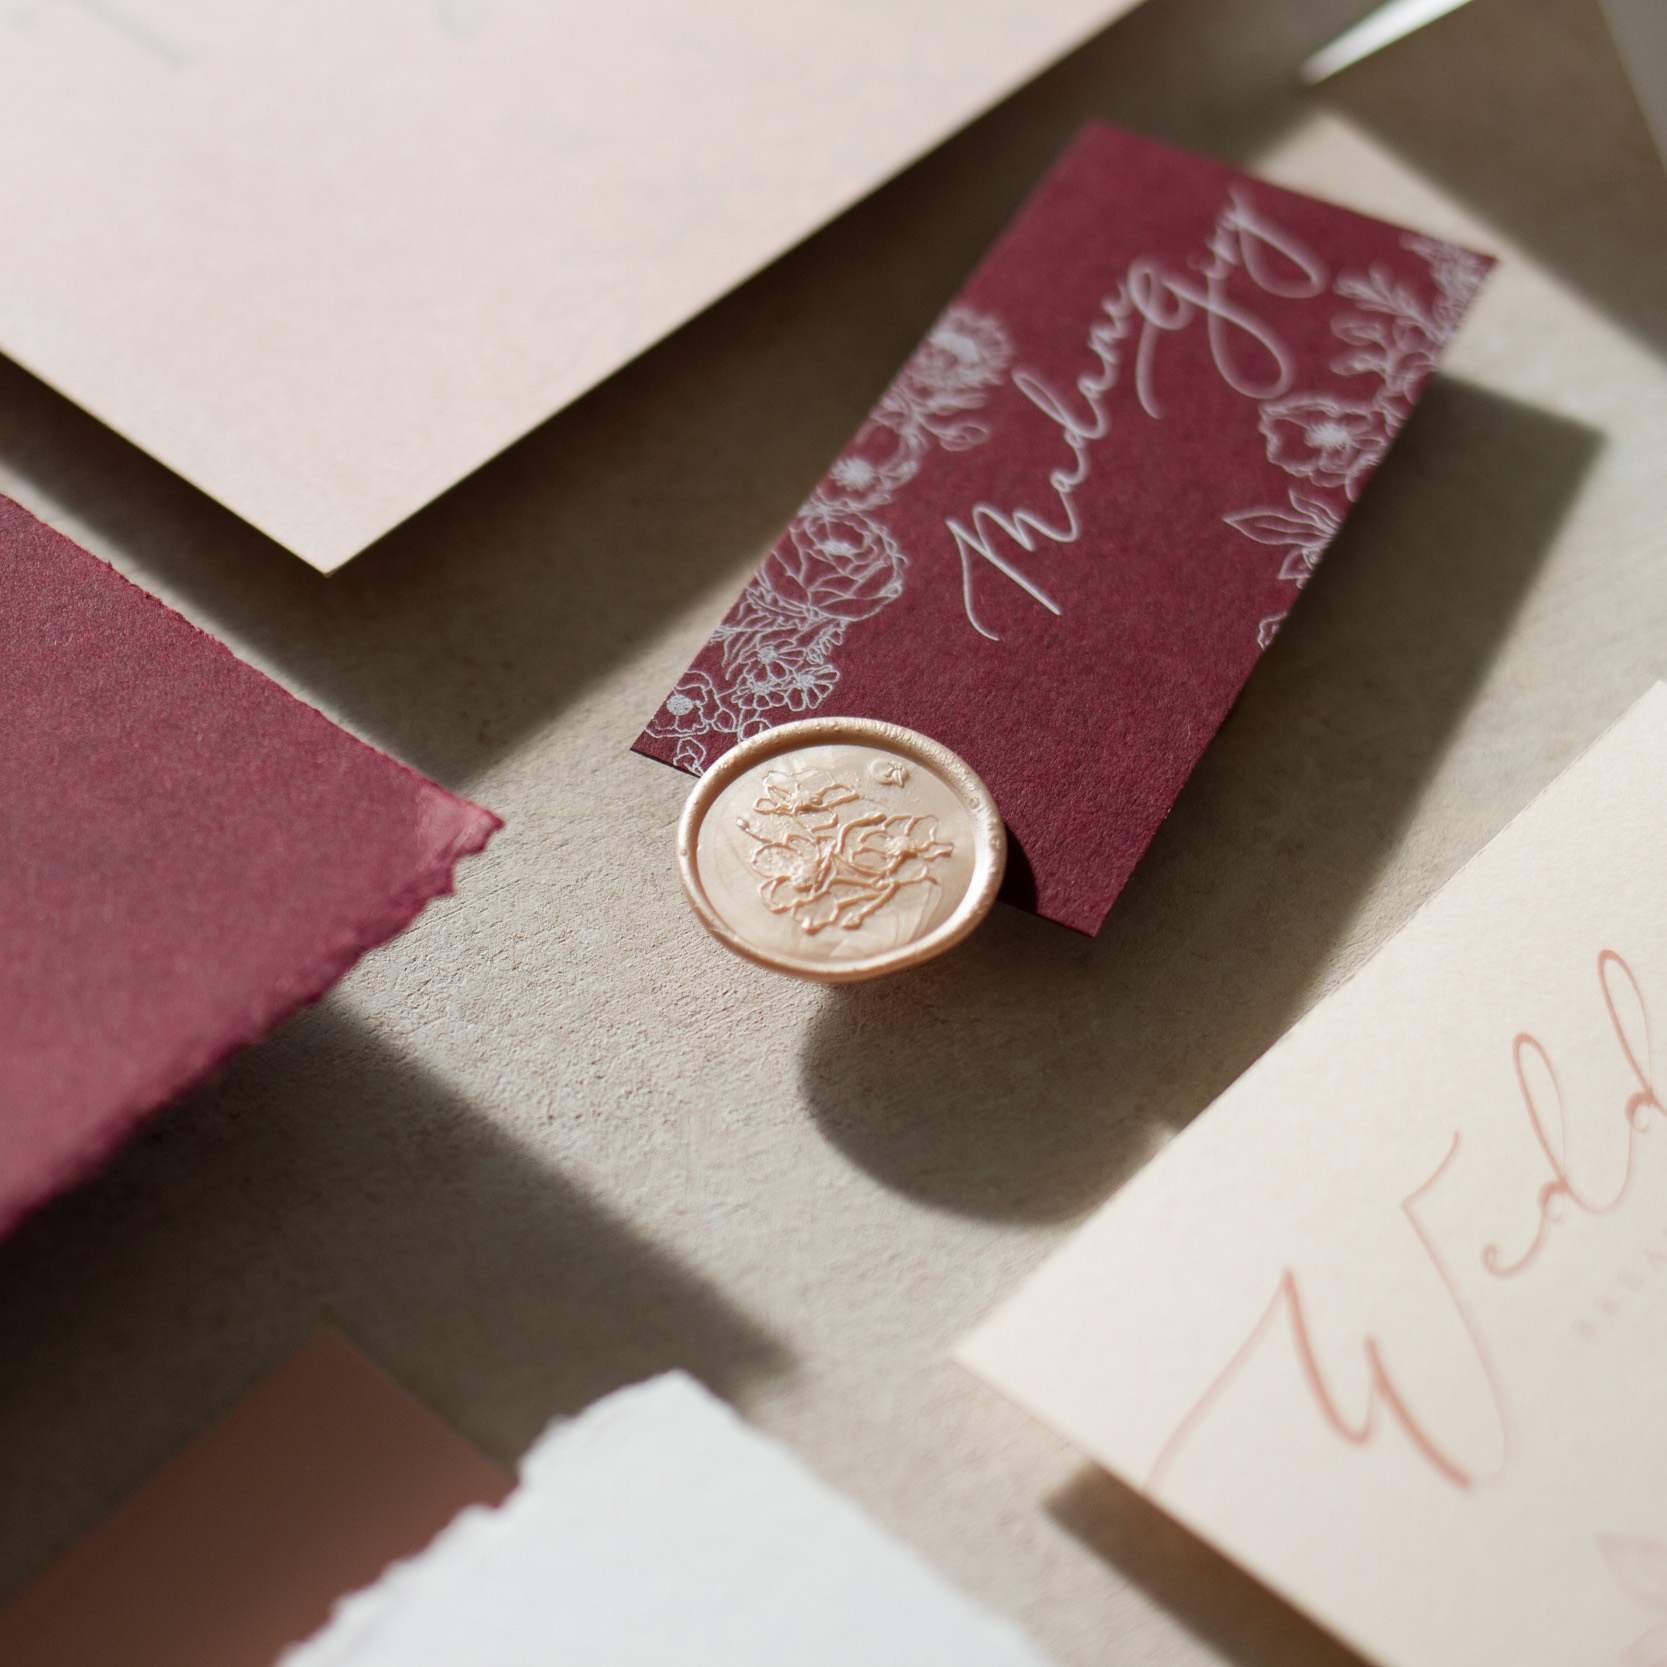 Blush Petals Unique on the Day Wedding Stationery Place Card Tag with Guest Name Printing - www.pinglepie.com.jpg